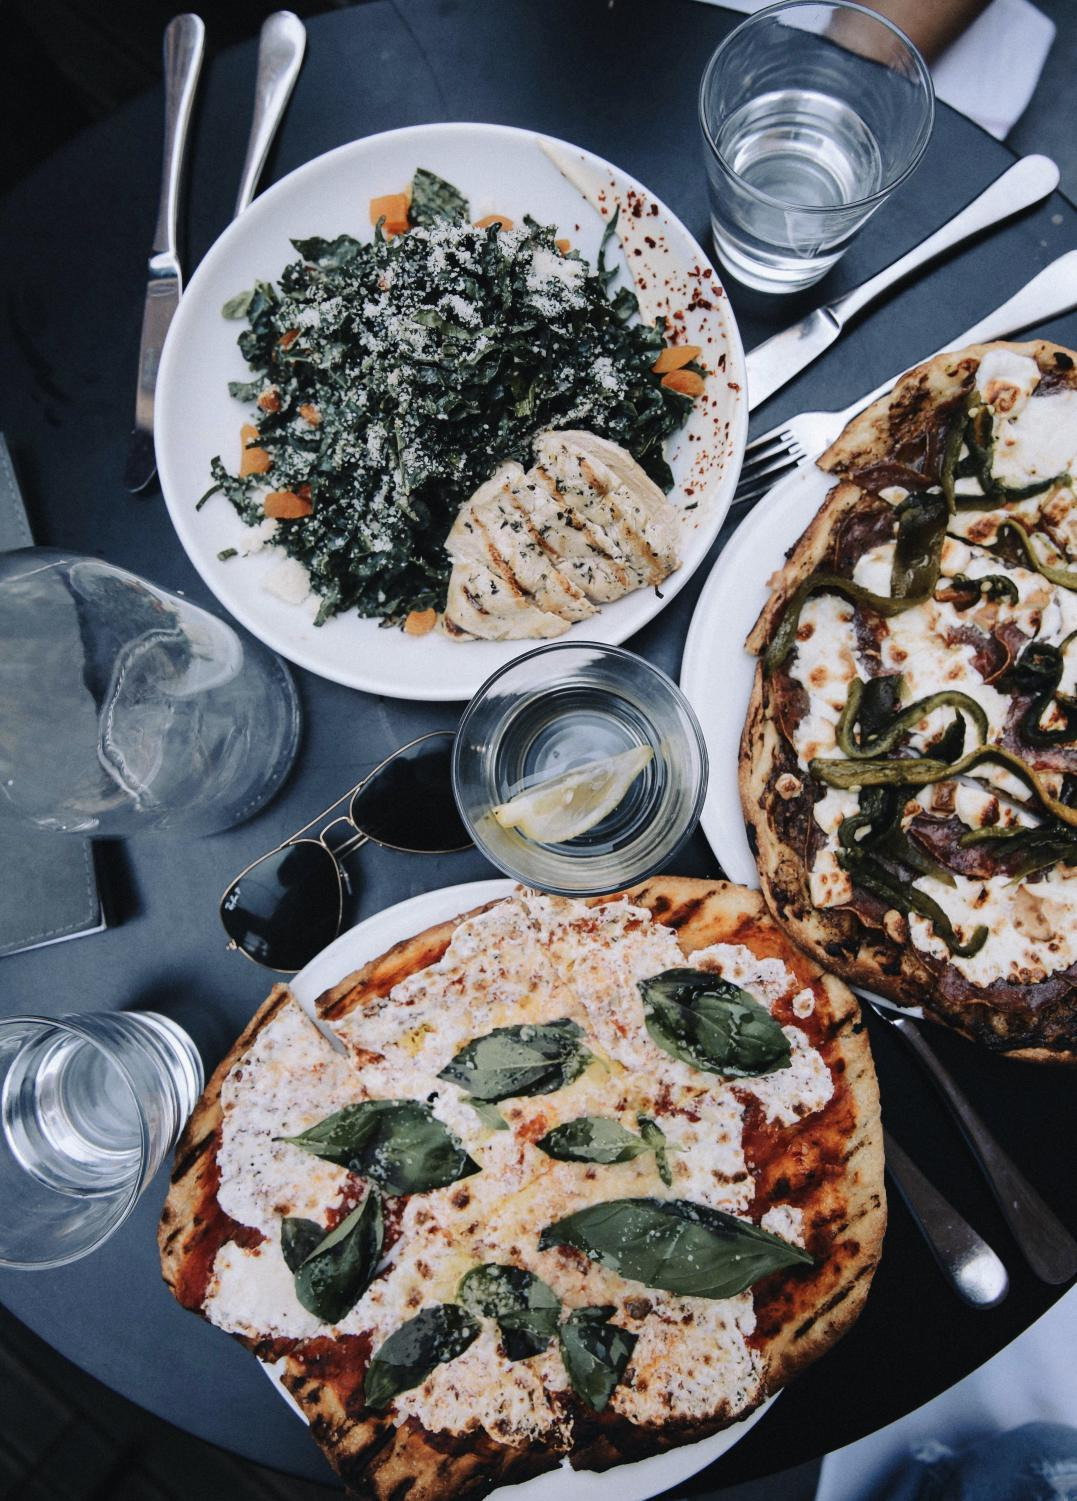 Flat lay photos of restaurant tables, aerial shots of plates and dishes, have become an Instagram staple to show off trendy foods.